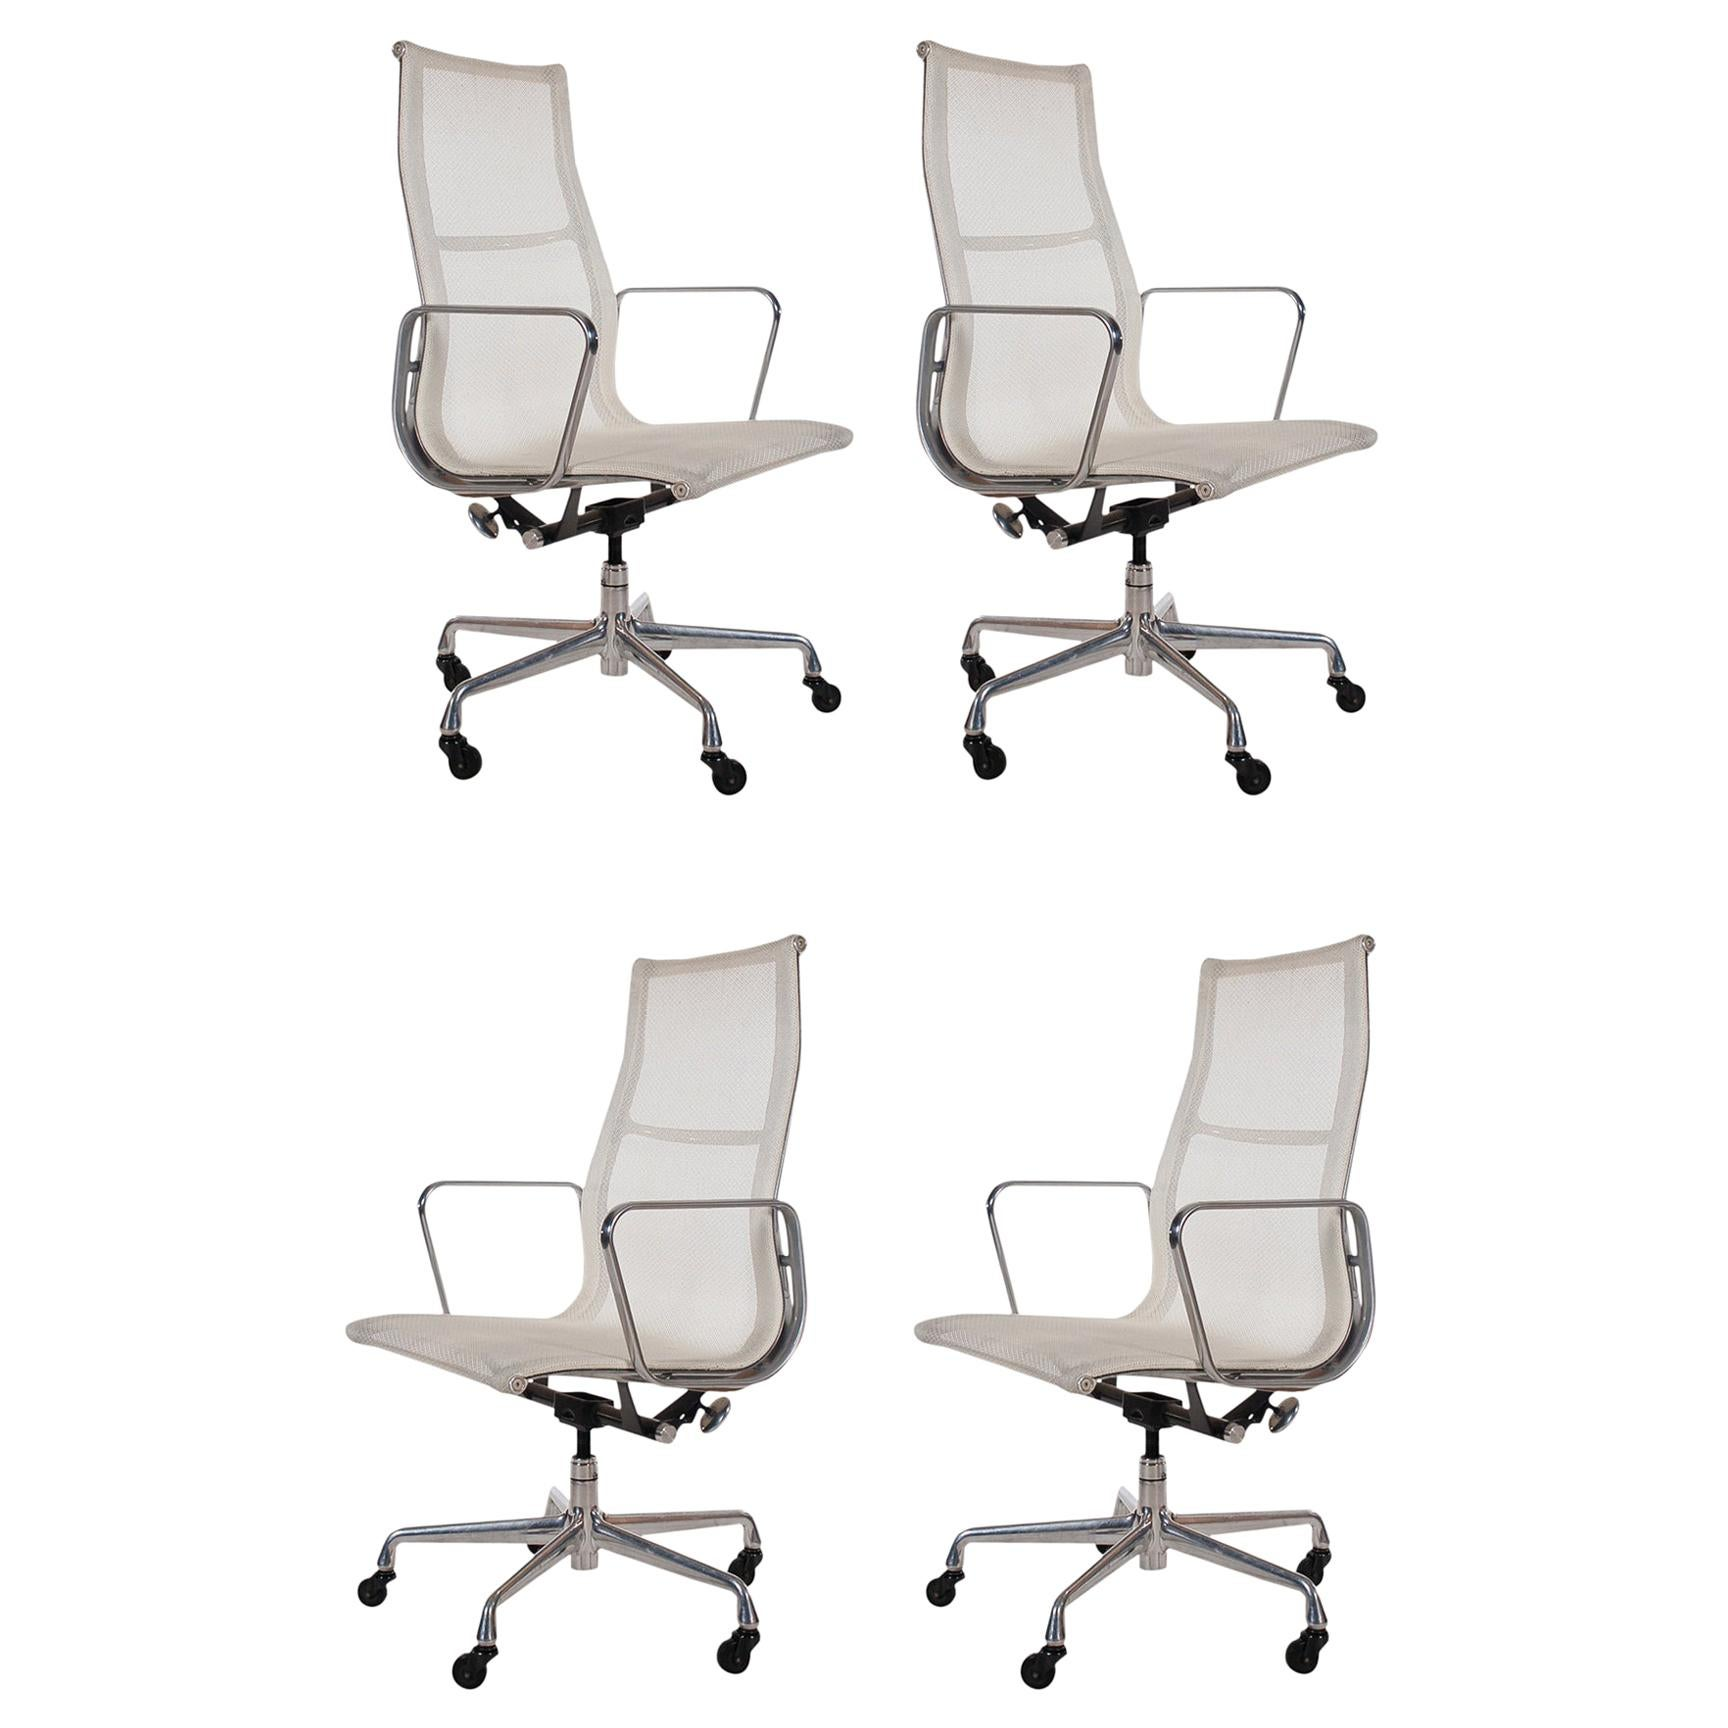 Set of Four Charles Eames for Herman Miller White Conference Room Office Chairs